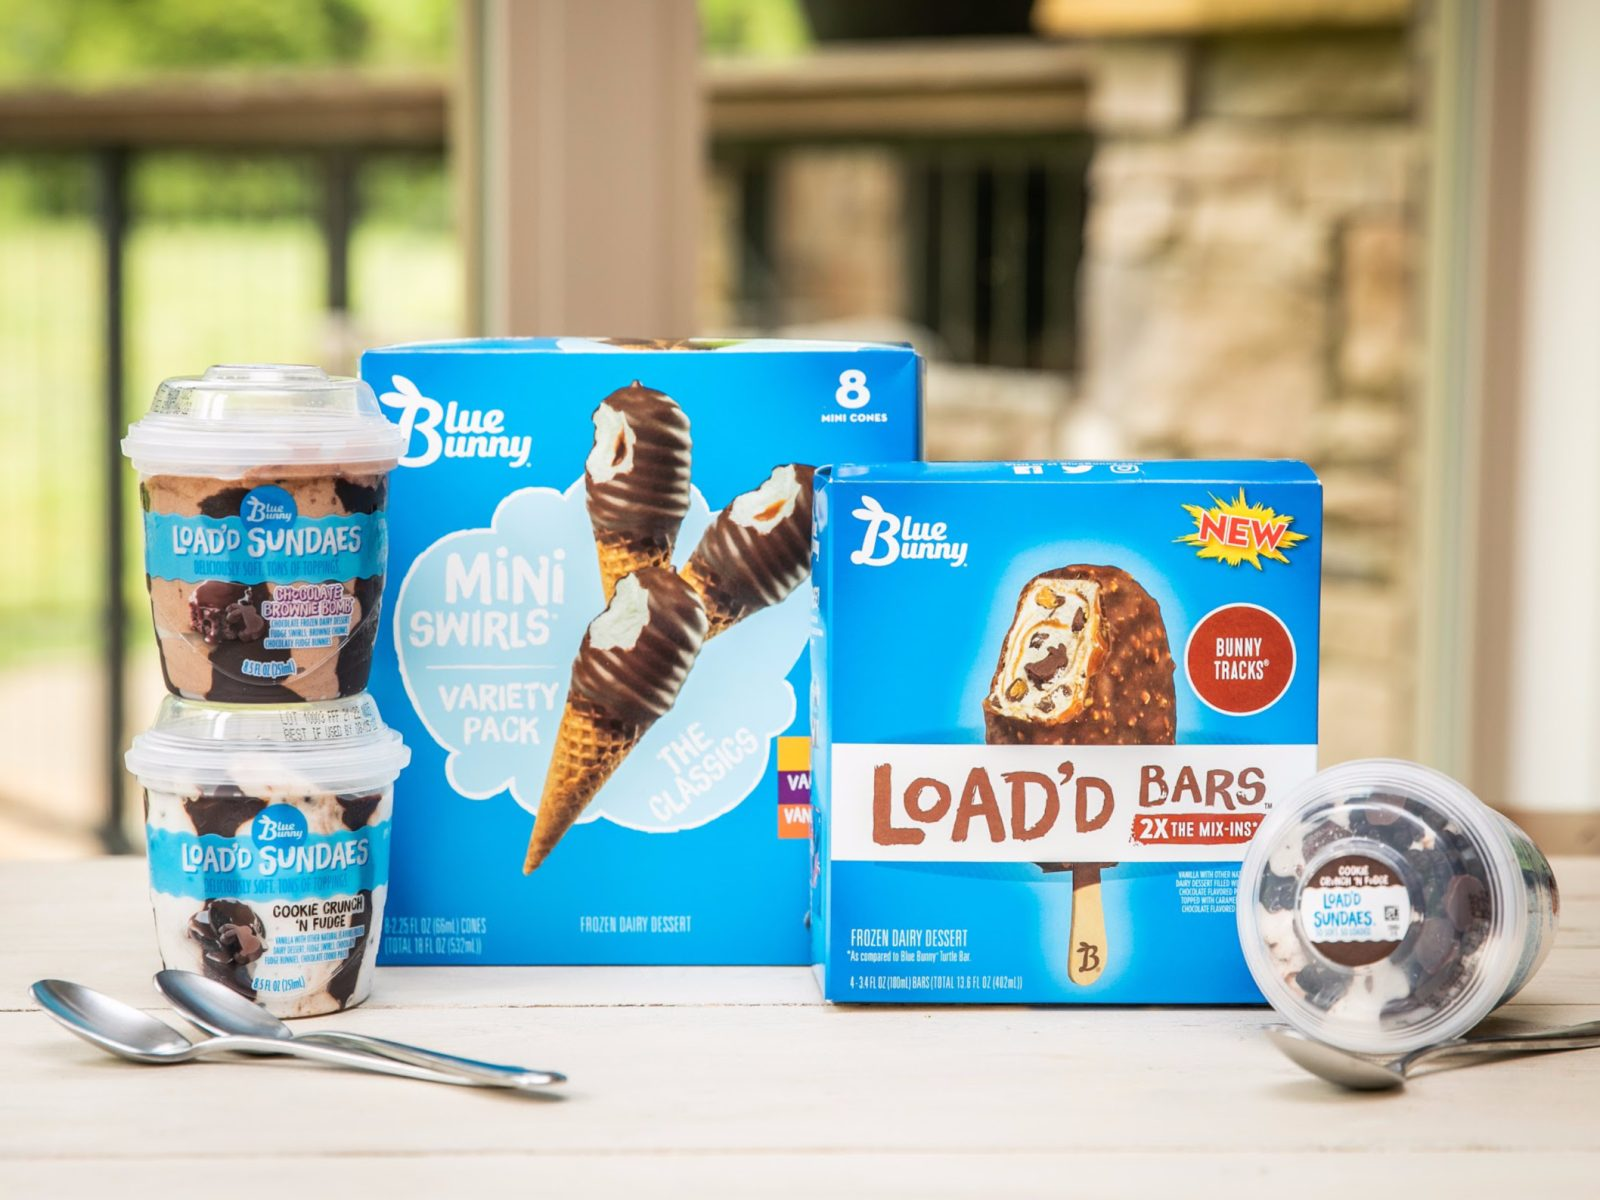 Pick Up A Big Variety Of Delicious Blue Bunny Treats At Publix - Lots Of Yum For Everyone! on I Heart Publix